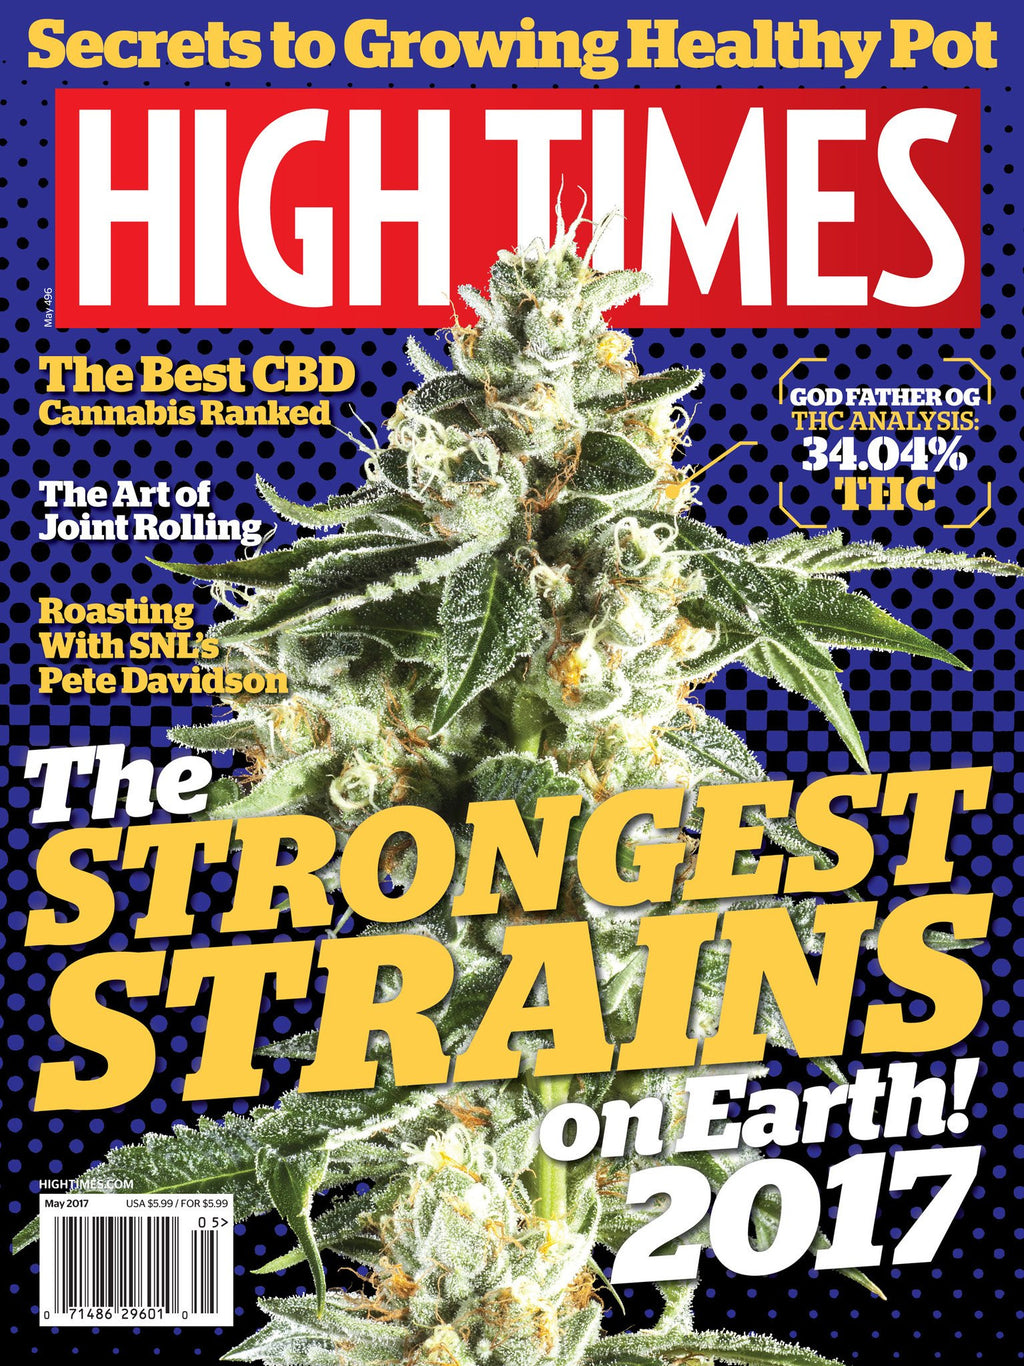 High Times Magazine May 2017 - Issue 496